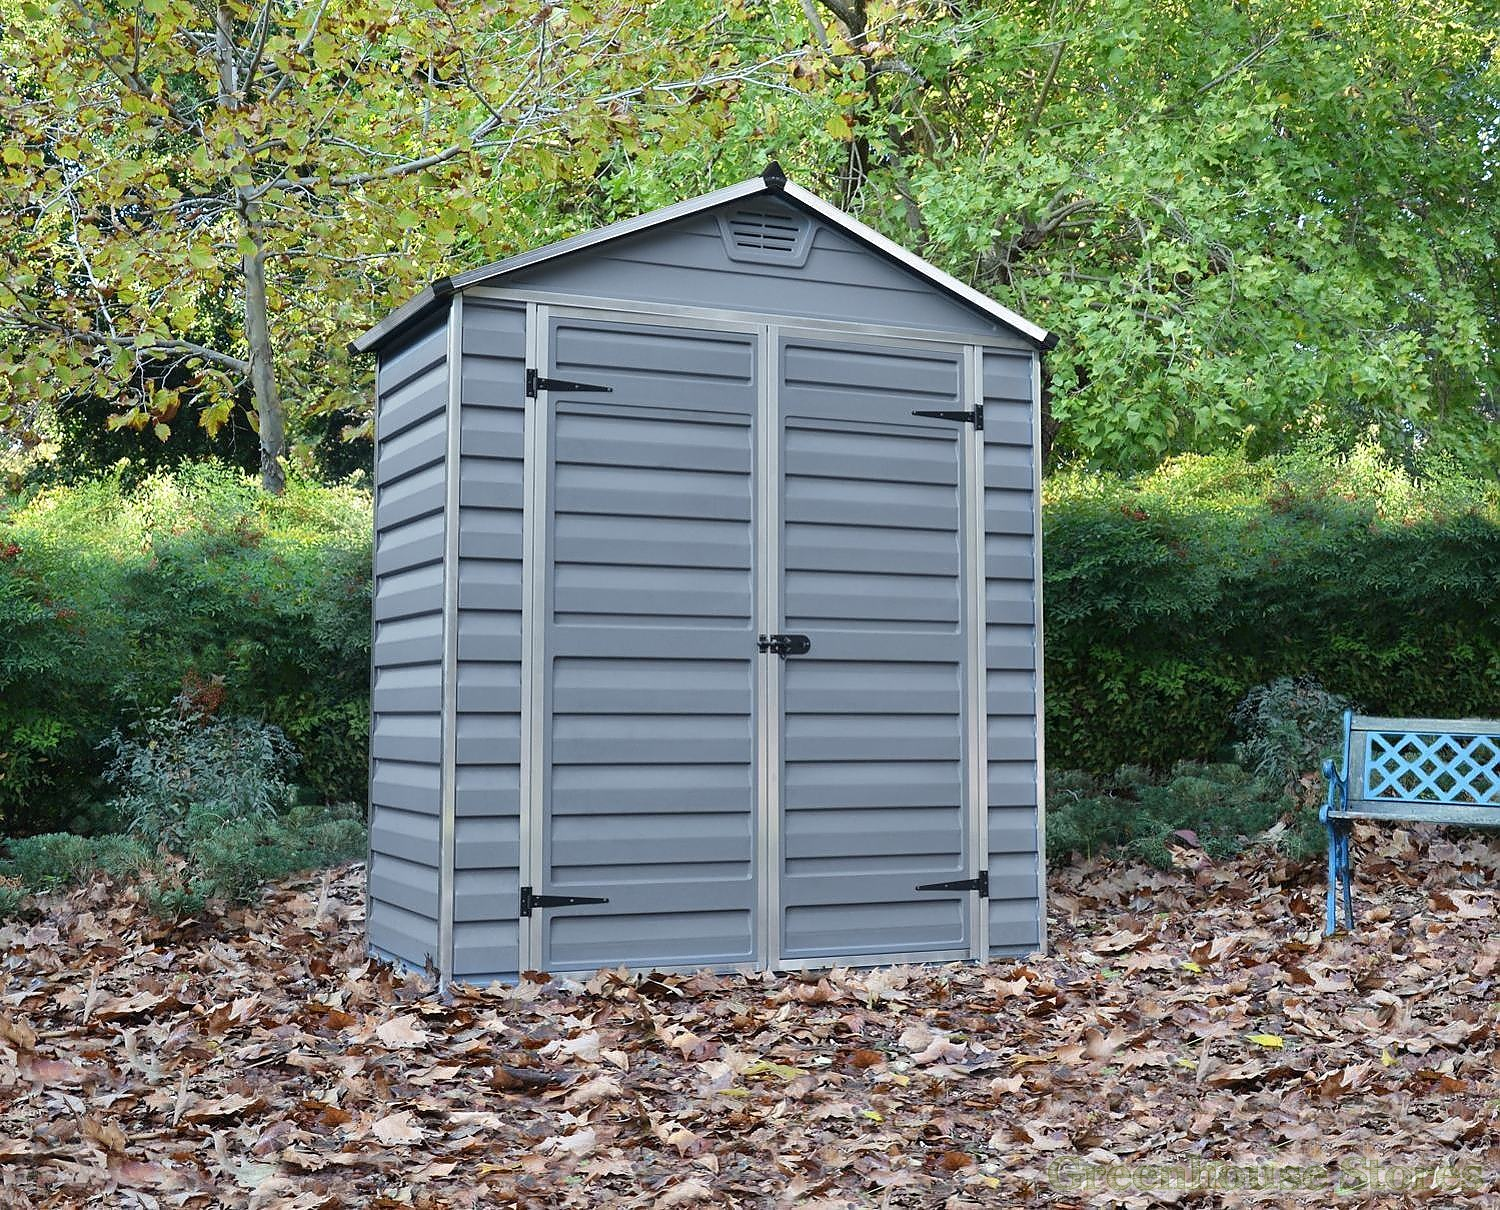 Palram 6x3 plastic skylight grey shed greenhouse stores for Garden shed 6x3